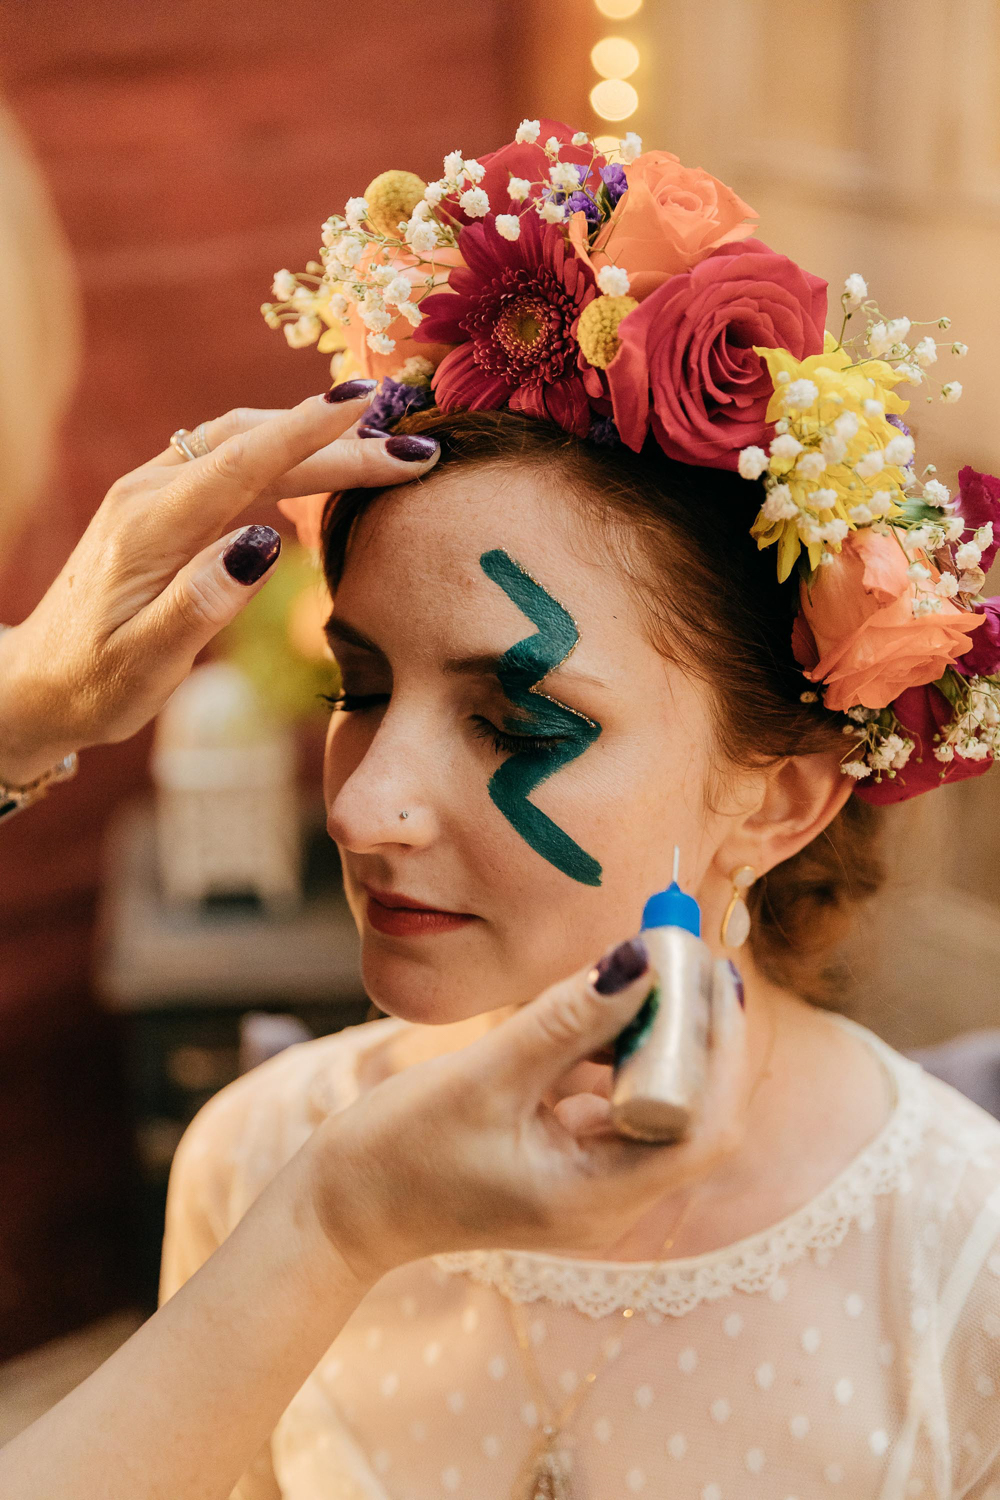 quirky vintage bride has bowie inspired face paint for wedding reception party